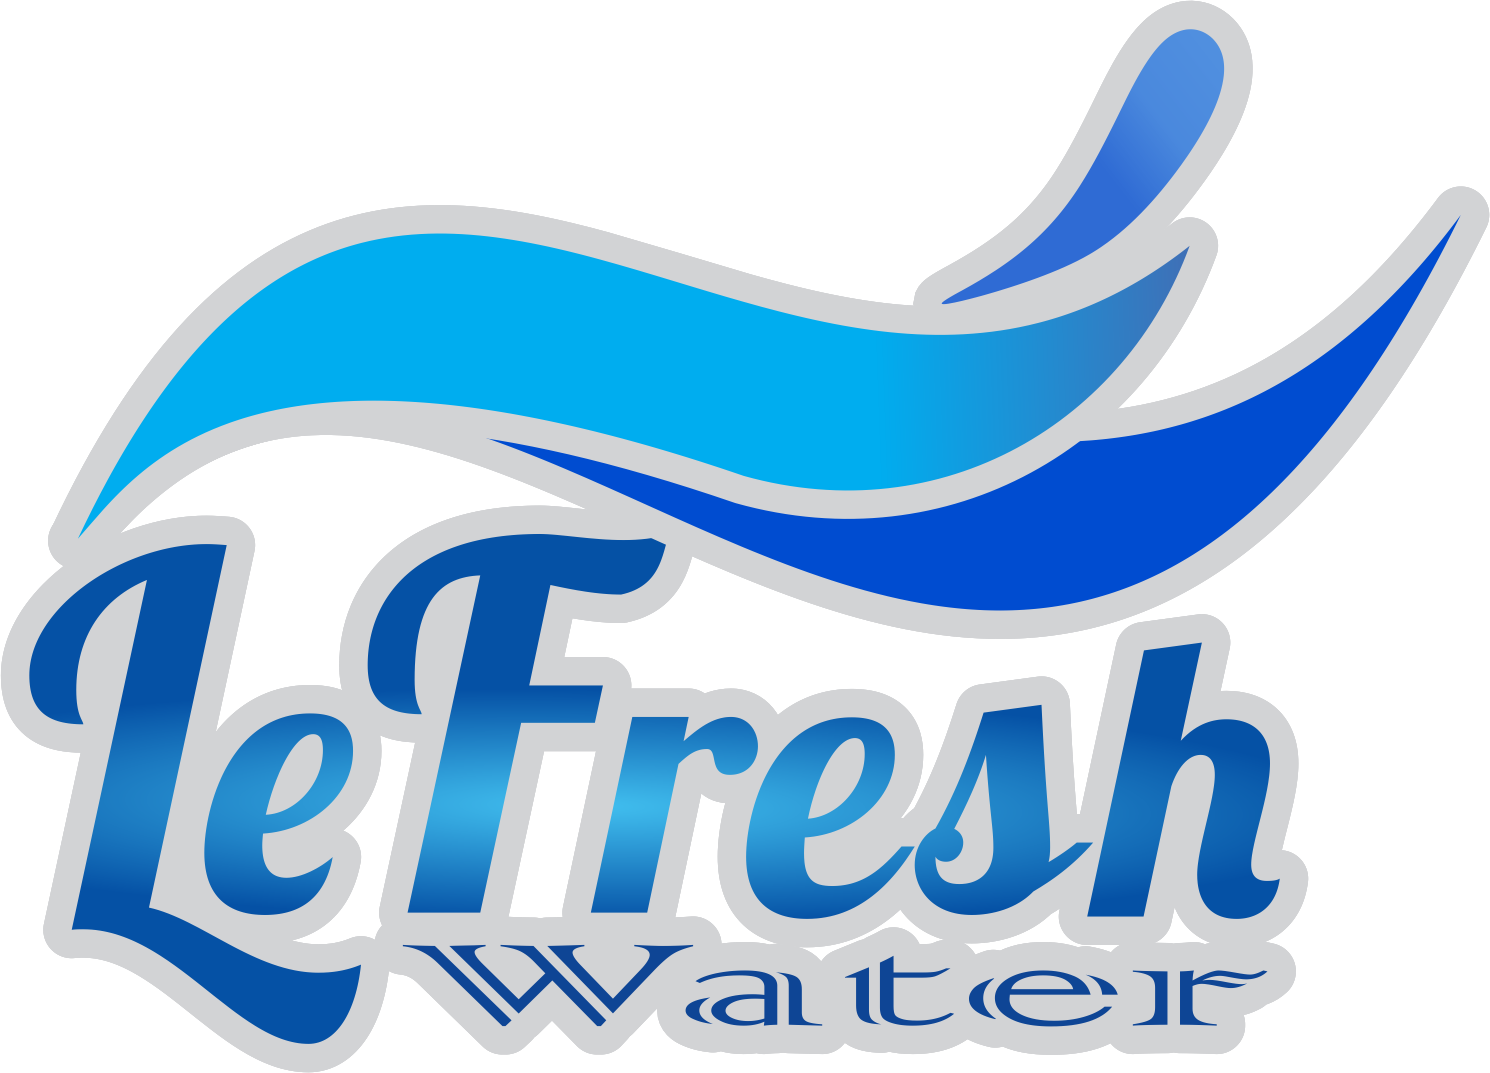 Lefresh Water Logo